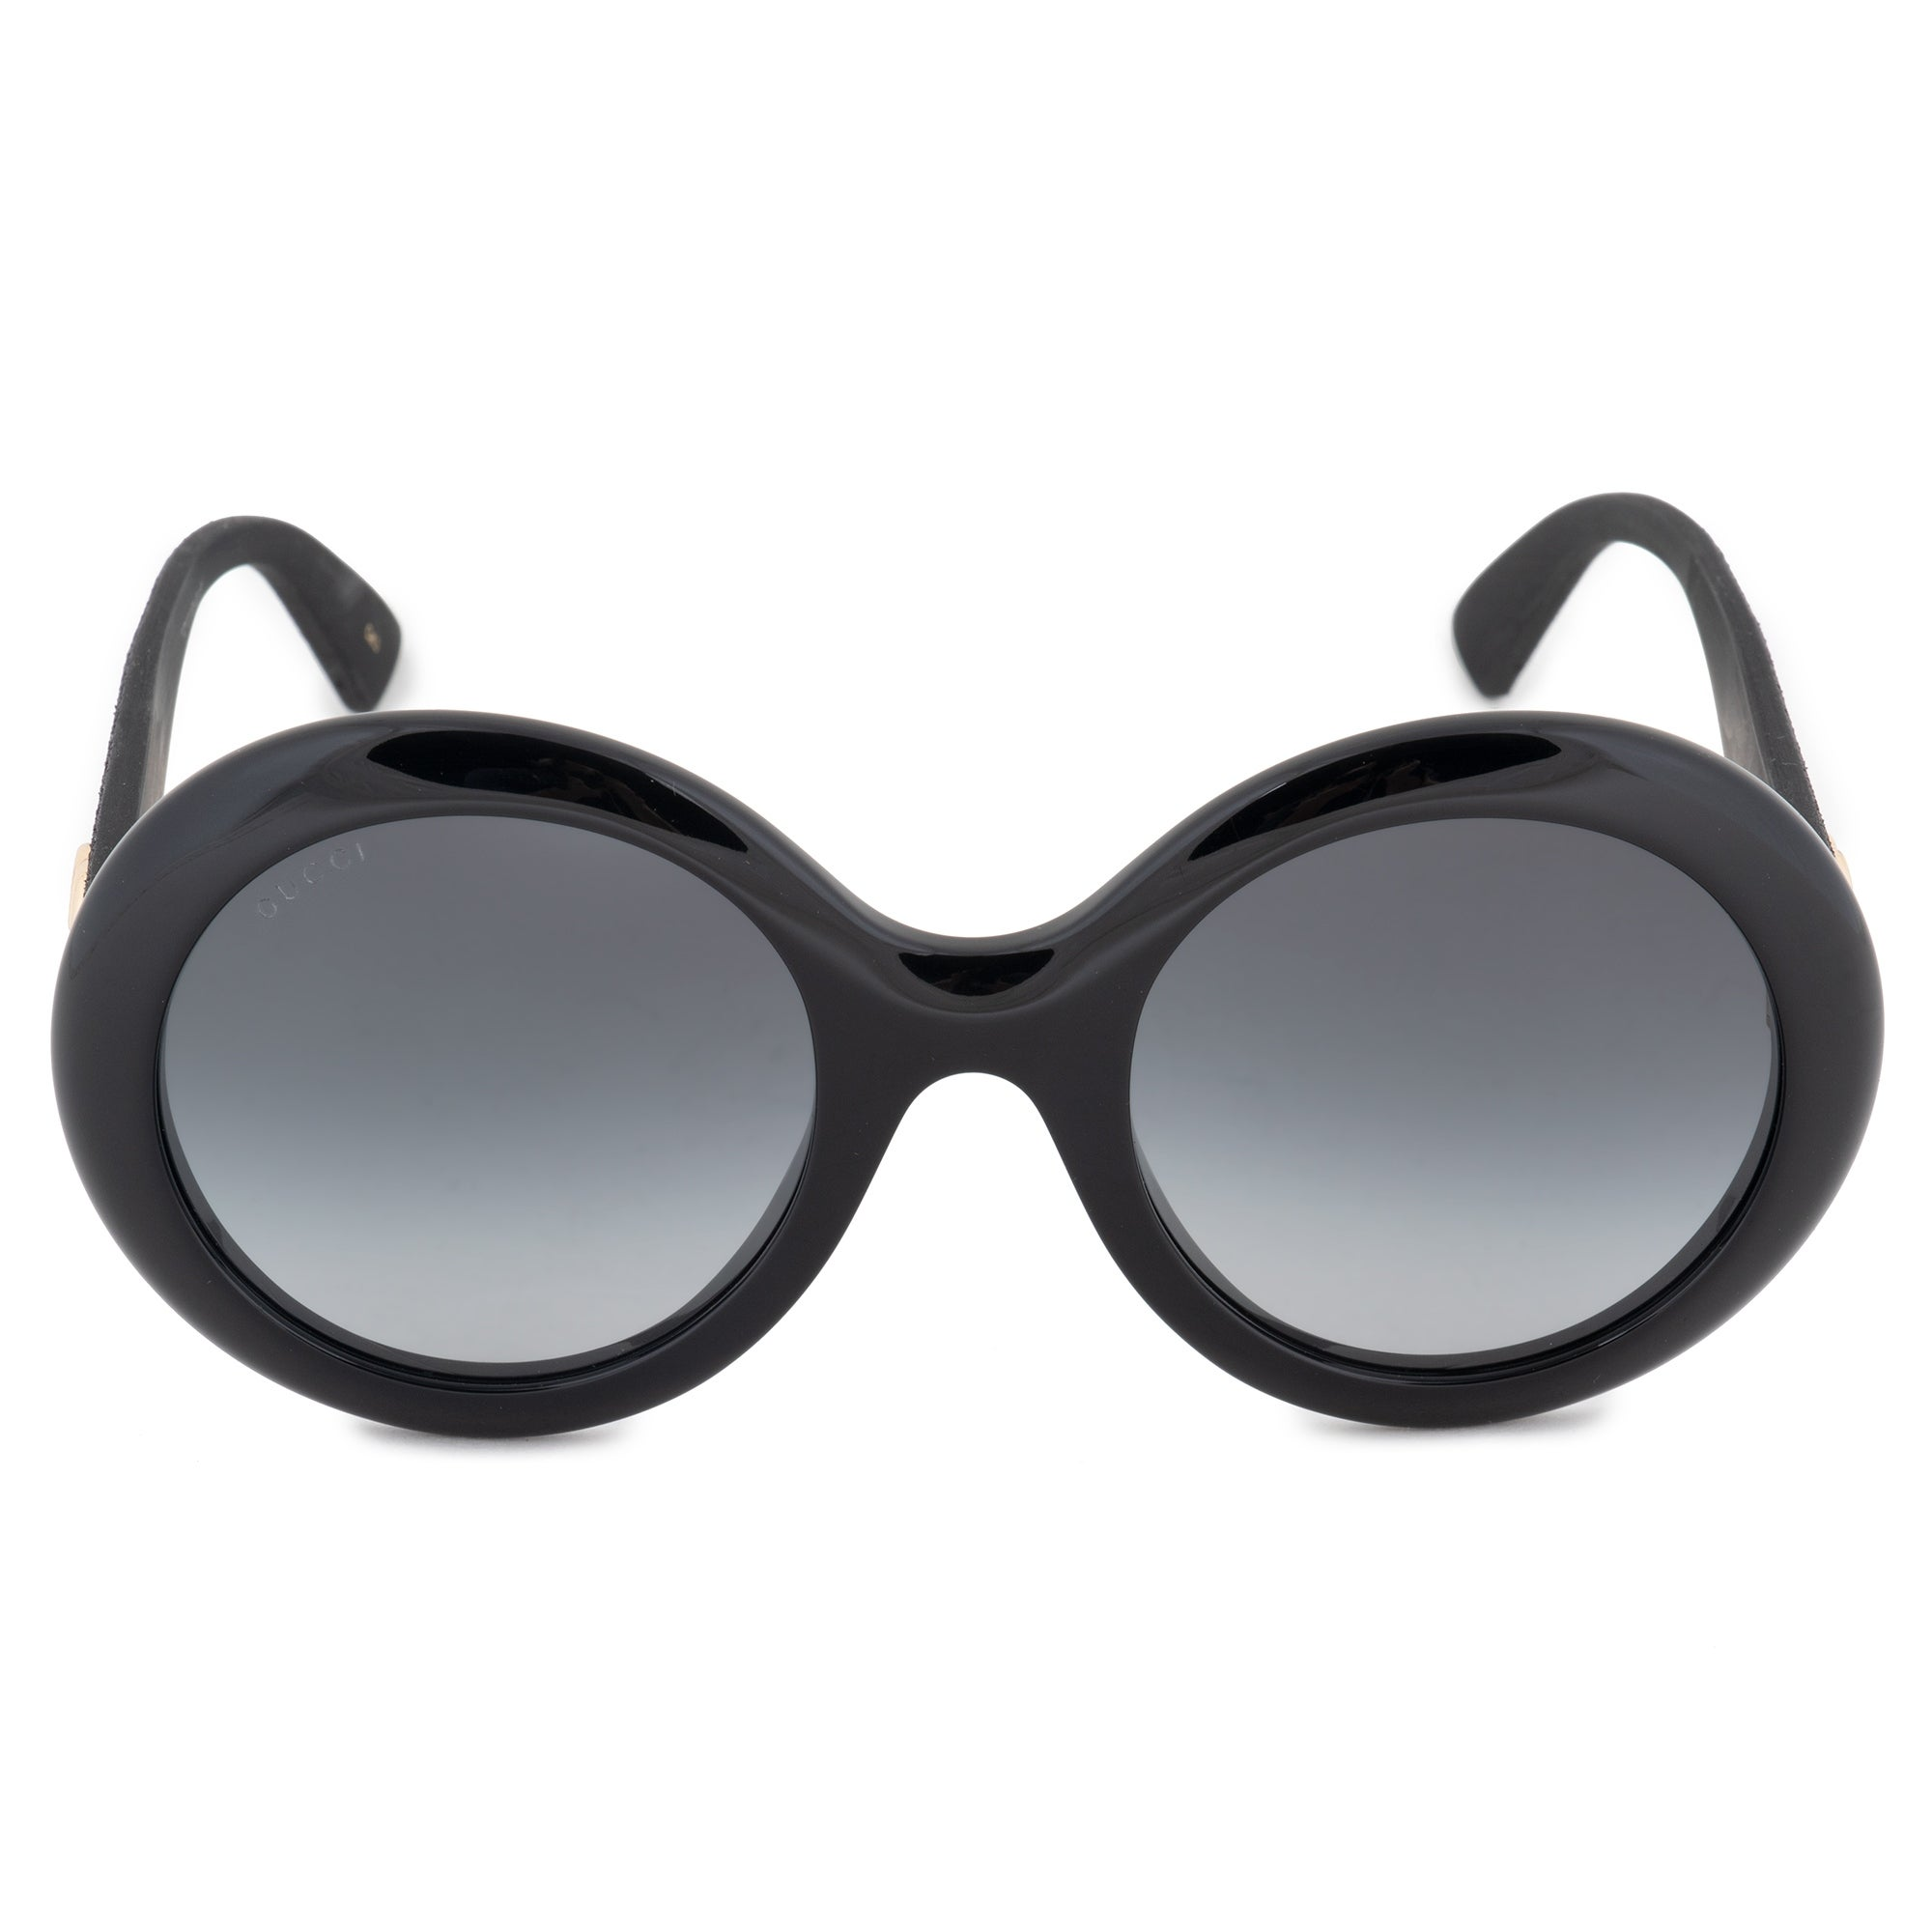 fed206e26 Gucci Sunglasses | Shop our Best Clothing & Shoes Deals Online at Overstock